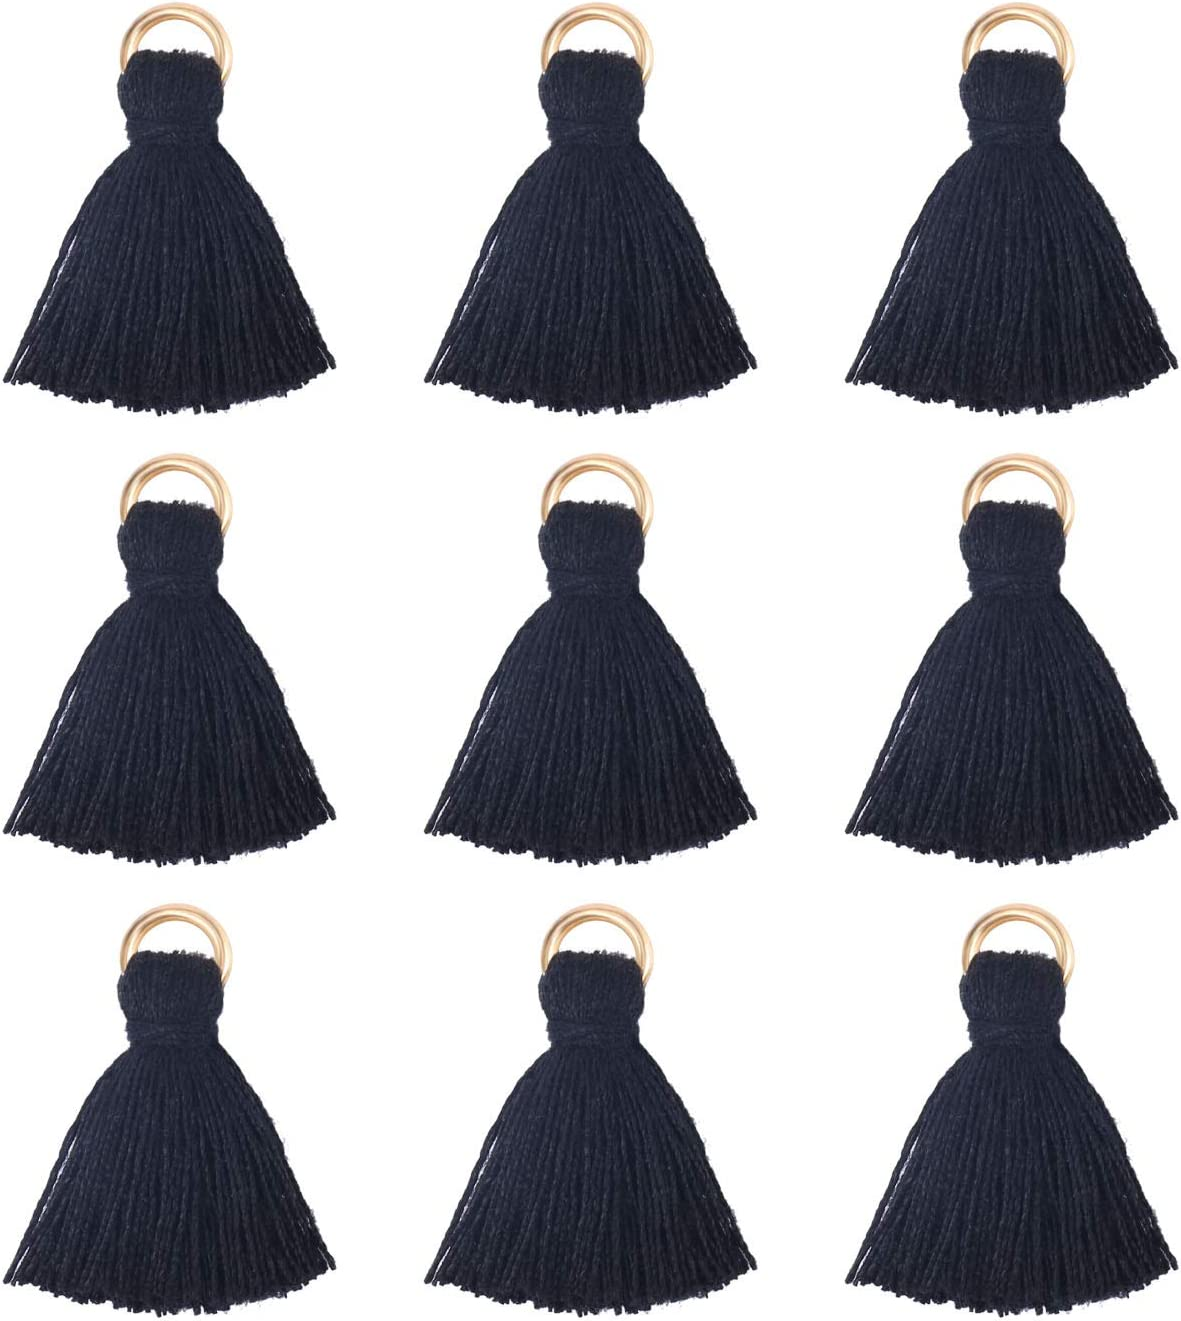 Wholesale 100pcs Mini Tassels Charms Short Cotton Gold Tassel Supplies for Crafts and Jewelry Making Aqua Blue